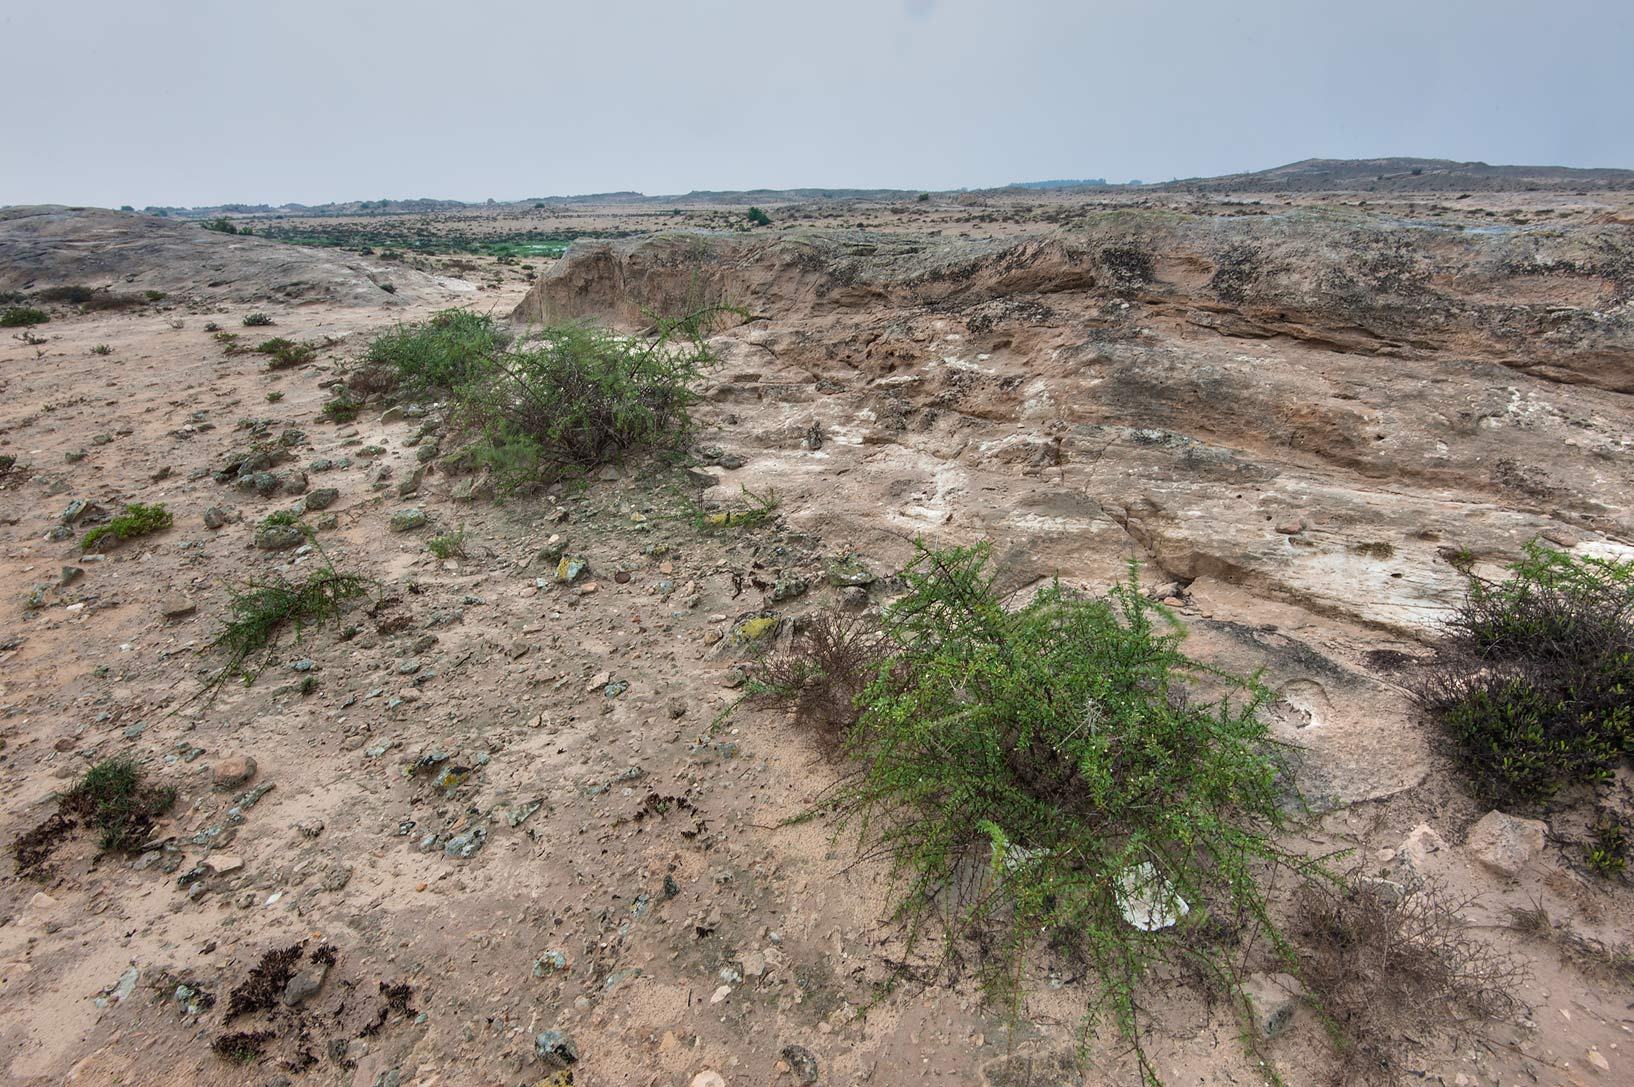 Rocky ridge at rain in Jabal Al Jassasiya site, on north-eastern coast. Qatar